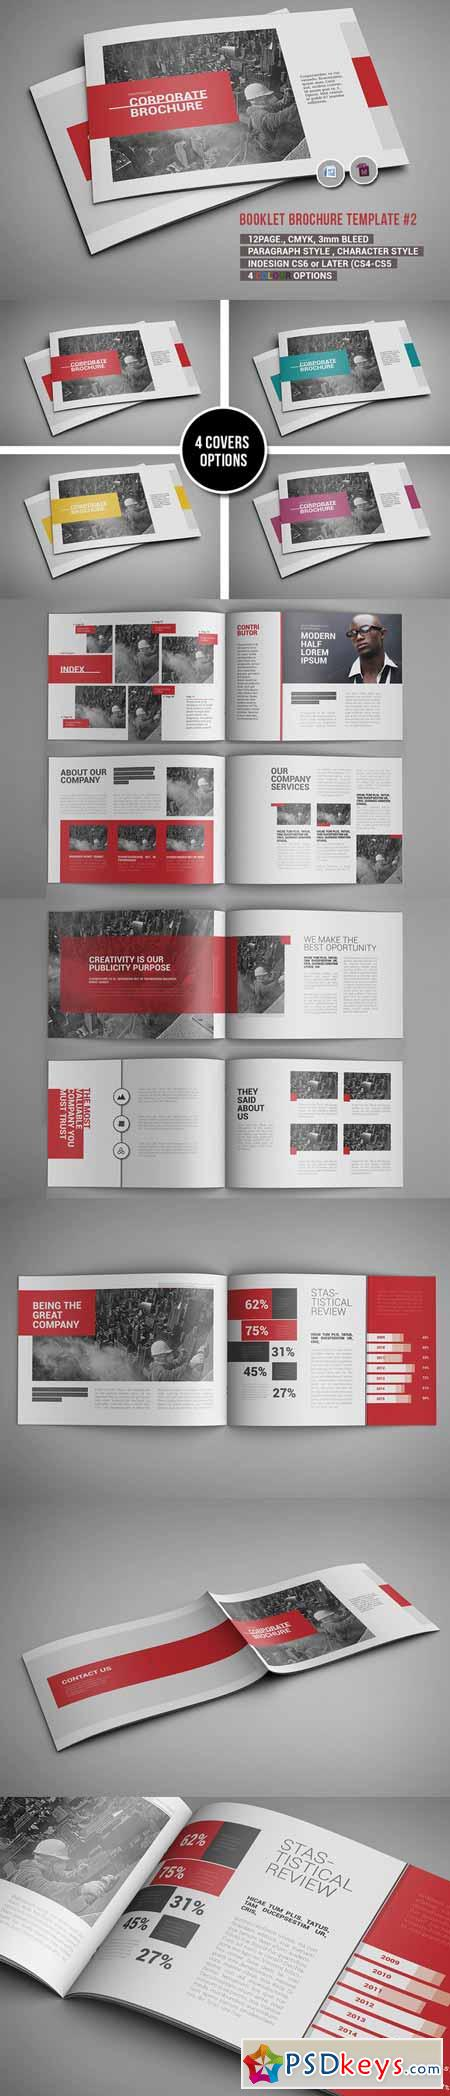 Booklet Brochure Template 2 474399 Free Download Photoshop Vector